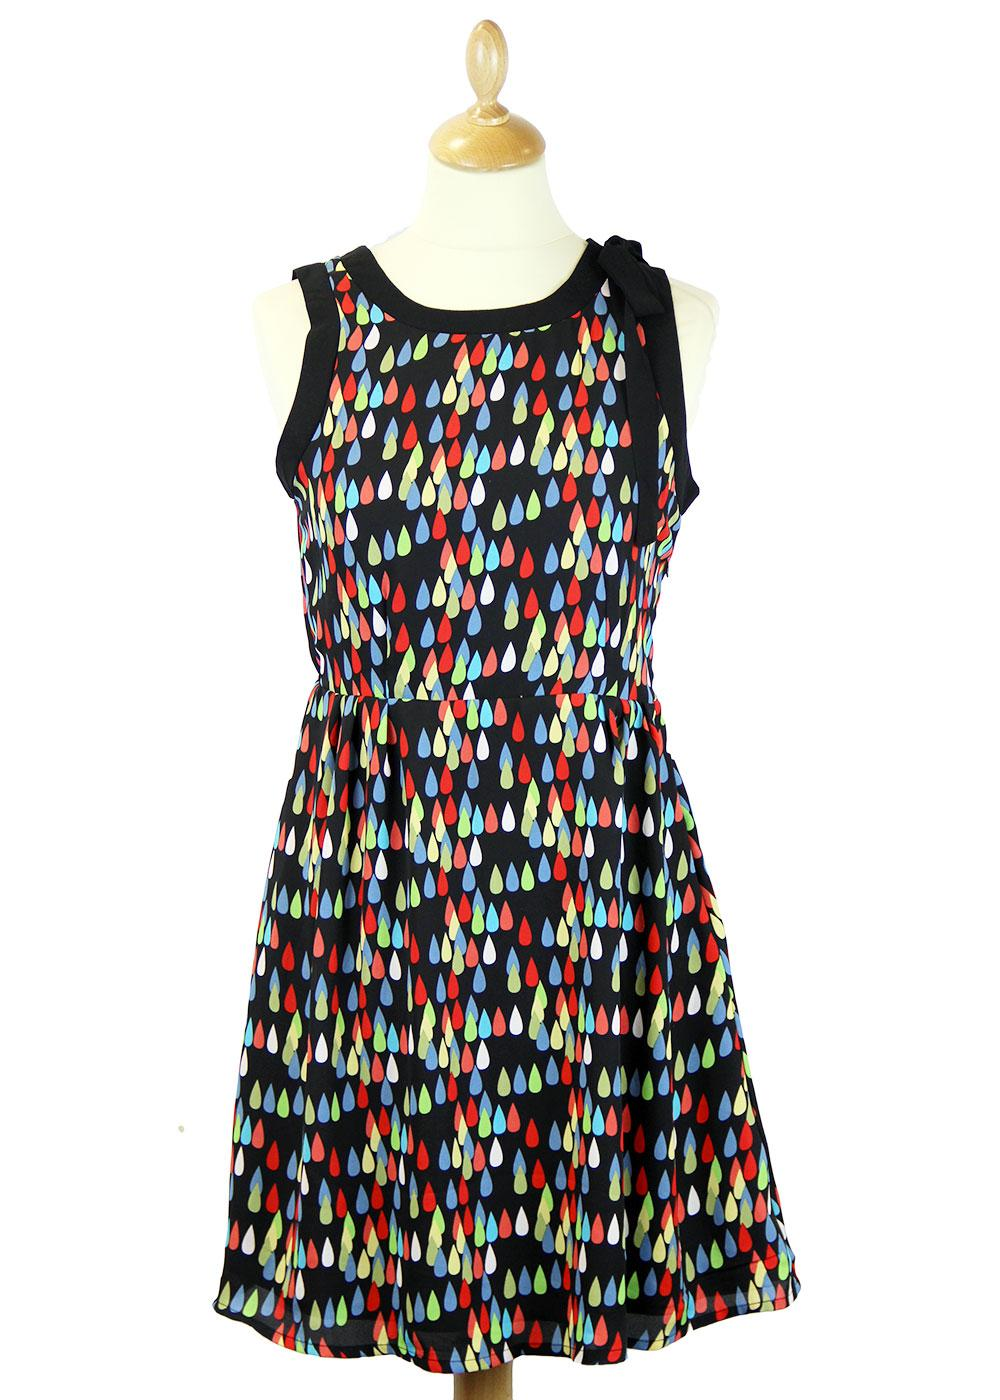 TULLE Retro 60s Raindrop Dress with Flared Skirt